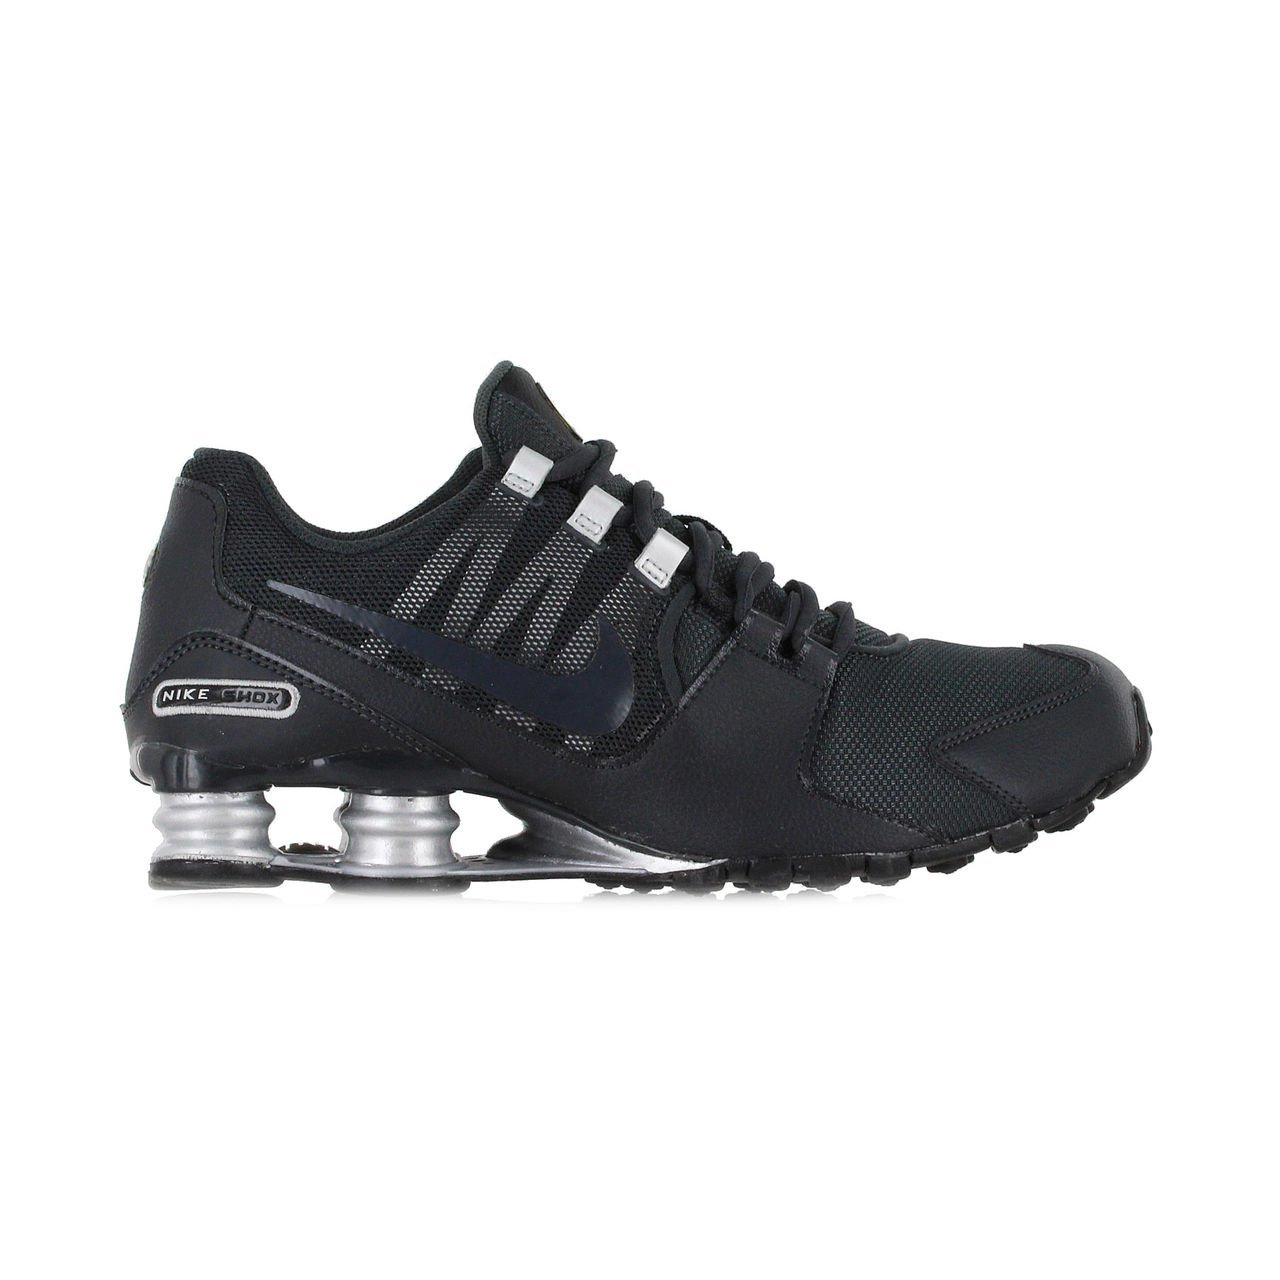 finest selection 011dd 5decf Nike Mens Shox Avenue Running Shoes, Anthracite Metallic Silver Black, 13  D(M) US  Buy Online at Low Prices in India - Amazon.in